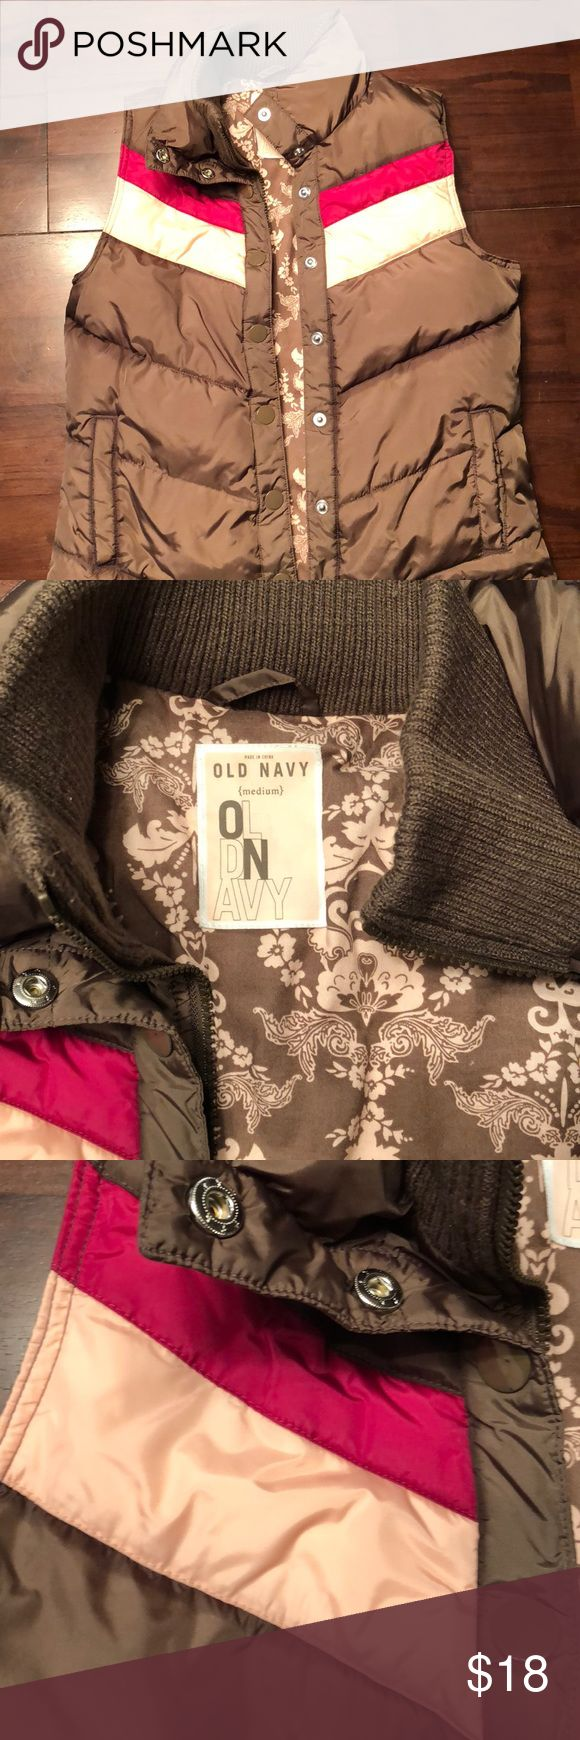 Women's Puffy Vest Size Medium Old Navy Chocolate color with peach and fuchsia strips. Super cute inside lining! Inside zipper works great. Sweater material on the neck for added warmth. Love it but too small for me. Old Navy Jackets & Coats Puffers